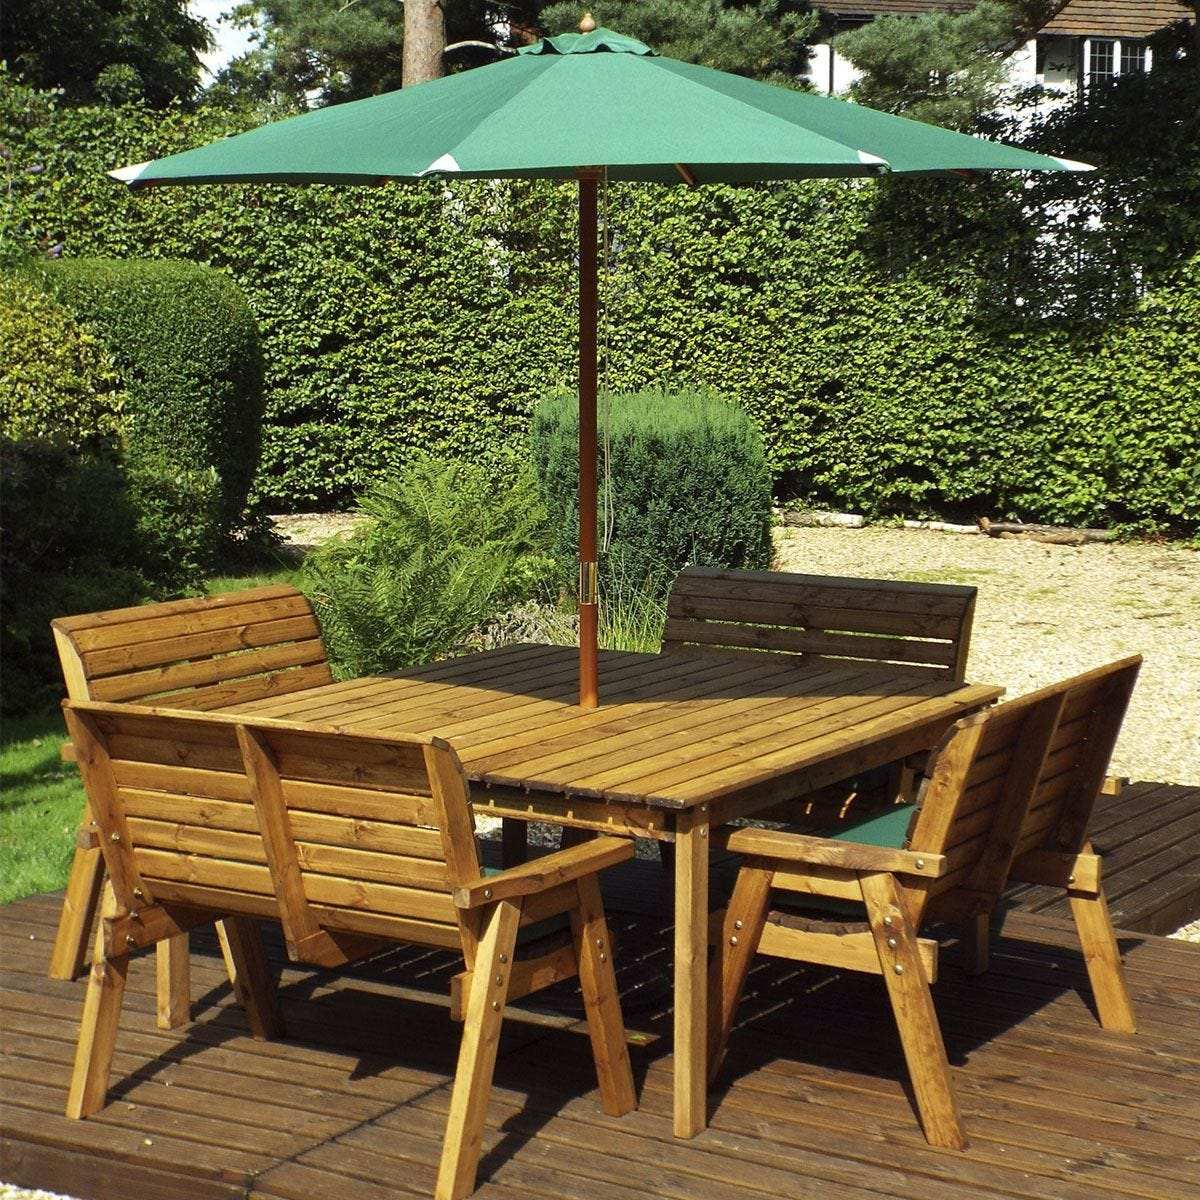 Charles Taylor 8 Seater Bench and Square Table Set with Cushions, Storage Bag, Parasol and Base